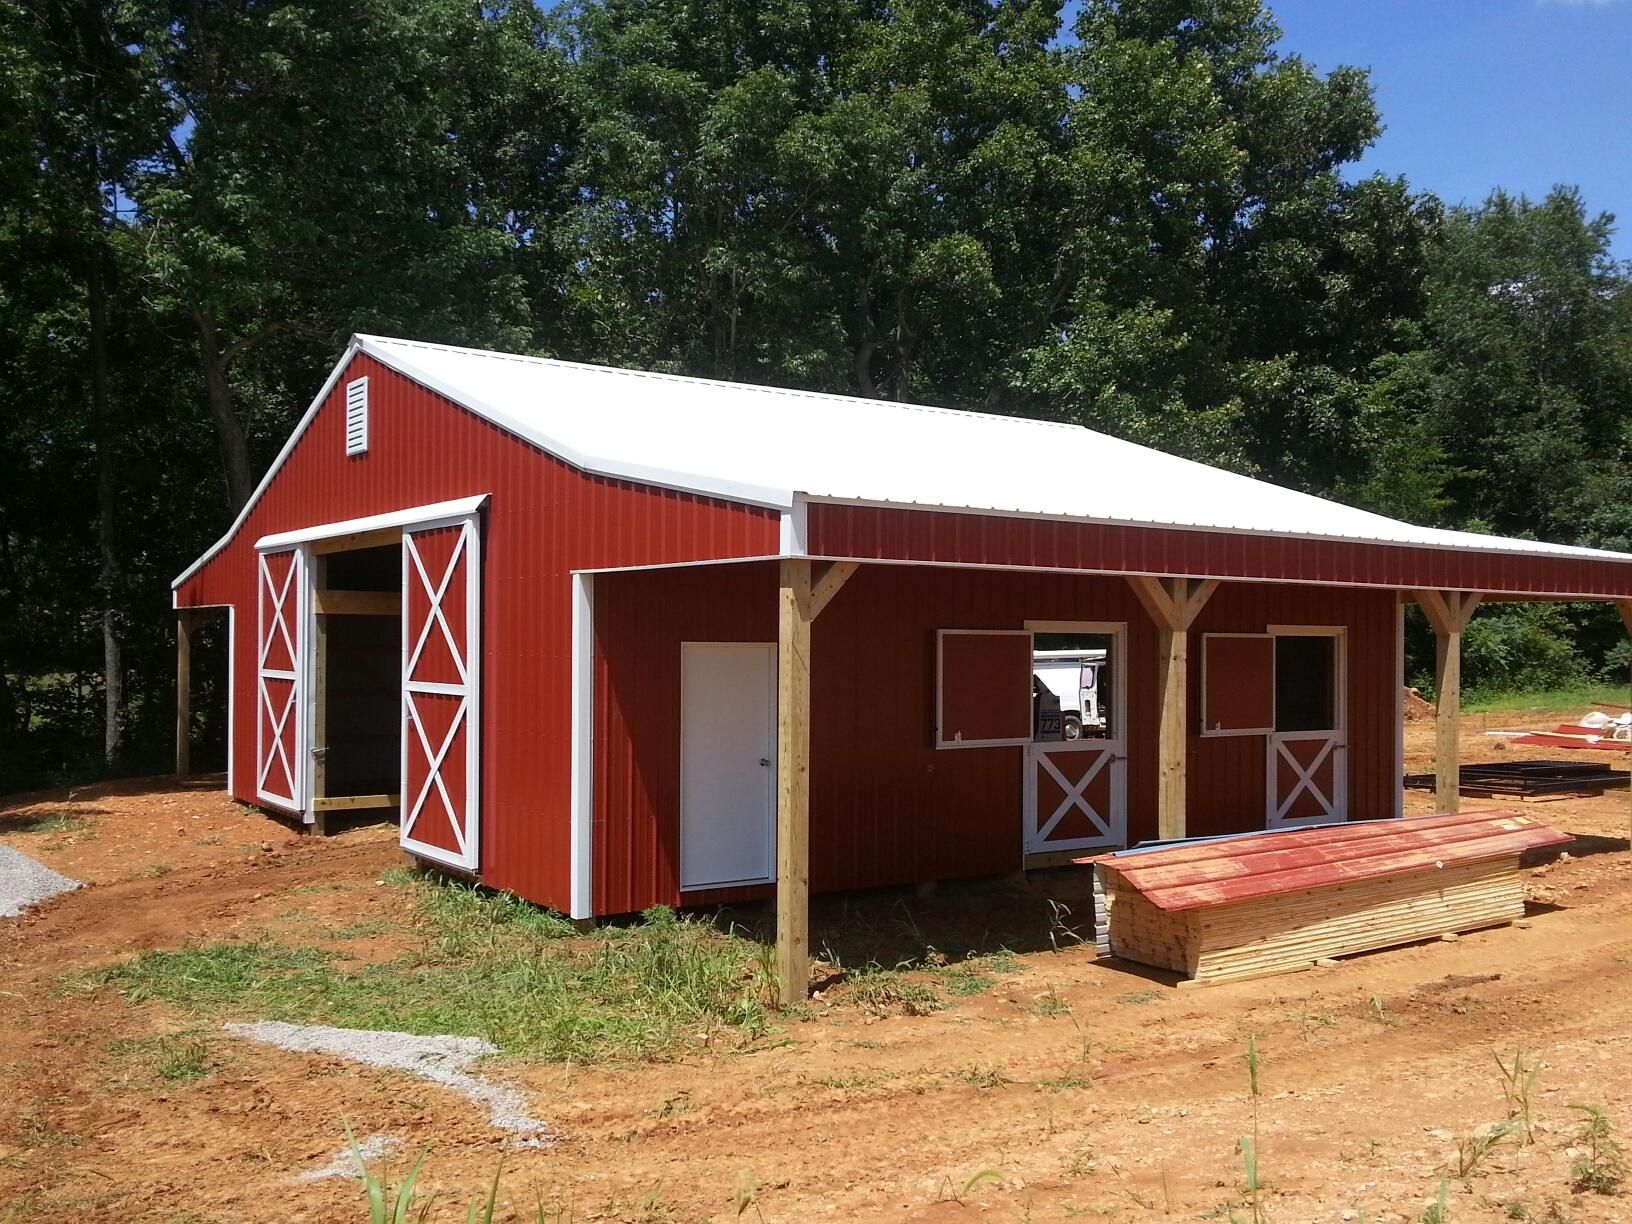 36x36x12 with 10x36 Shed and 12x36 Shed - Horse Barn www ...